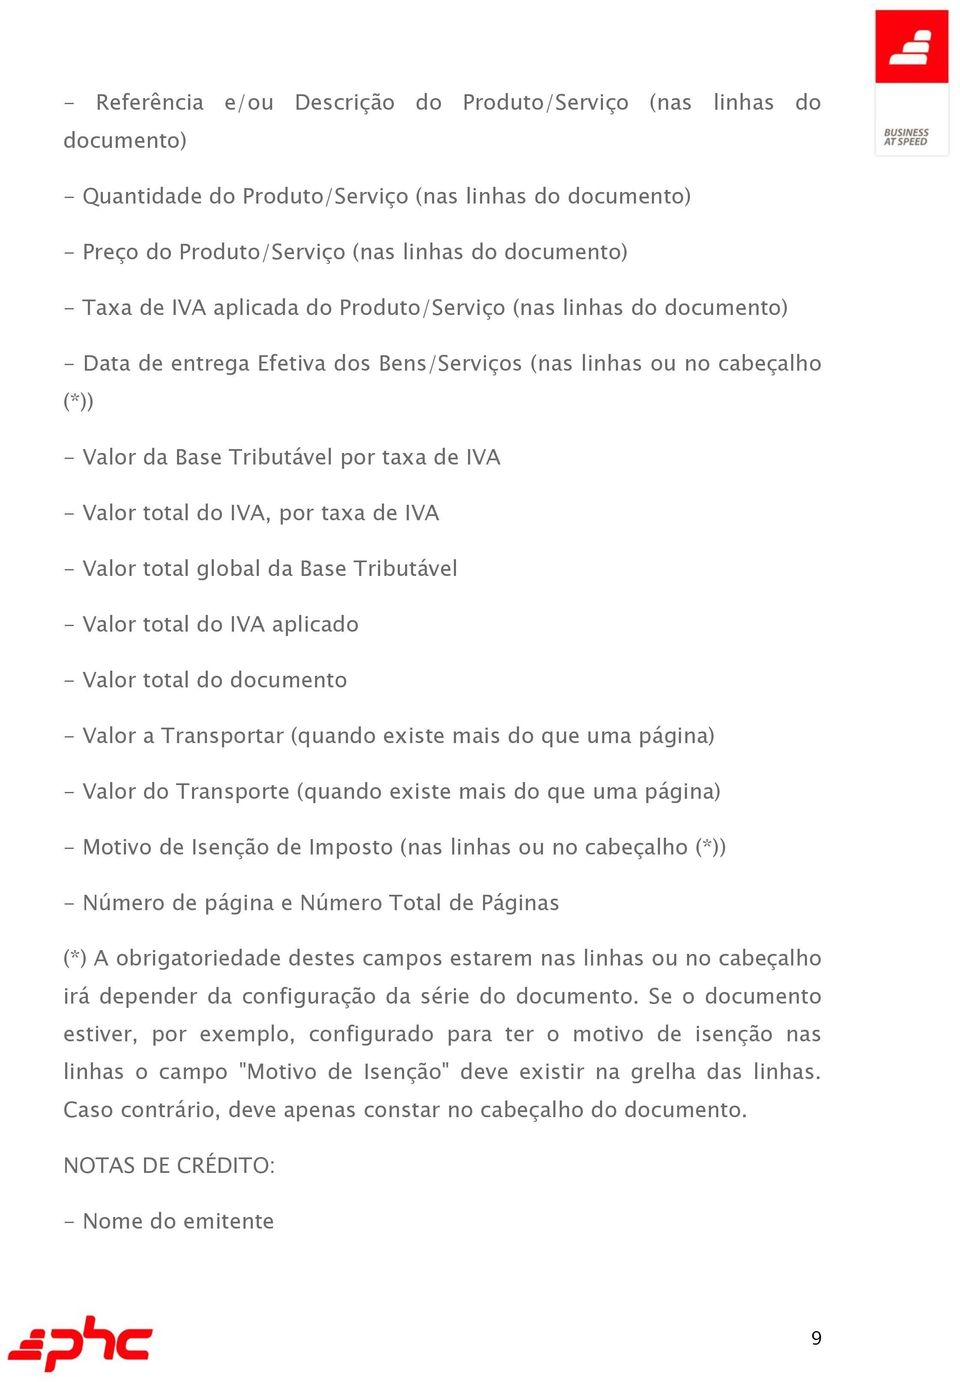 taxa de IVA - Valor total global da Base Tributável - Valor total do IVA aplicado - Valor total do documento - Valor a Transportar (quando existe mais do que uma página) - Valor do Transporte (quando